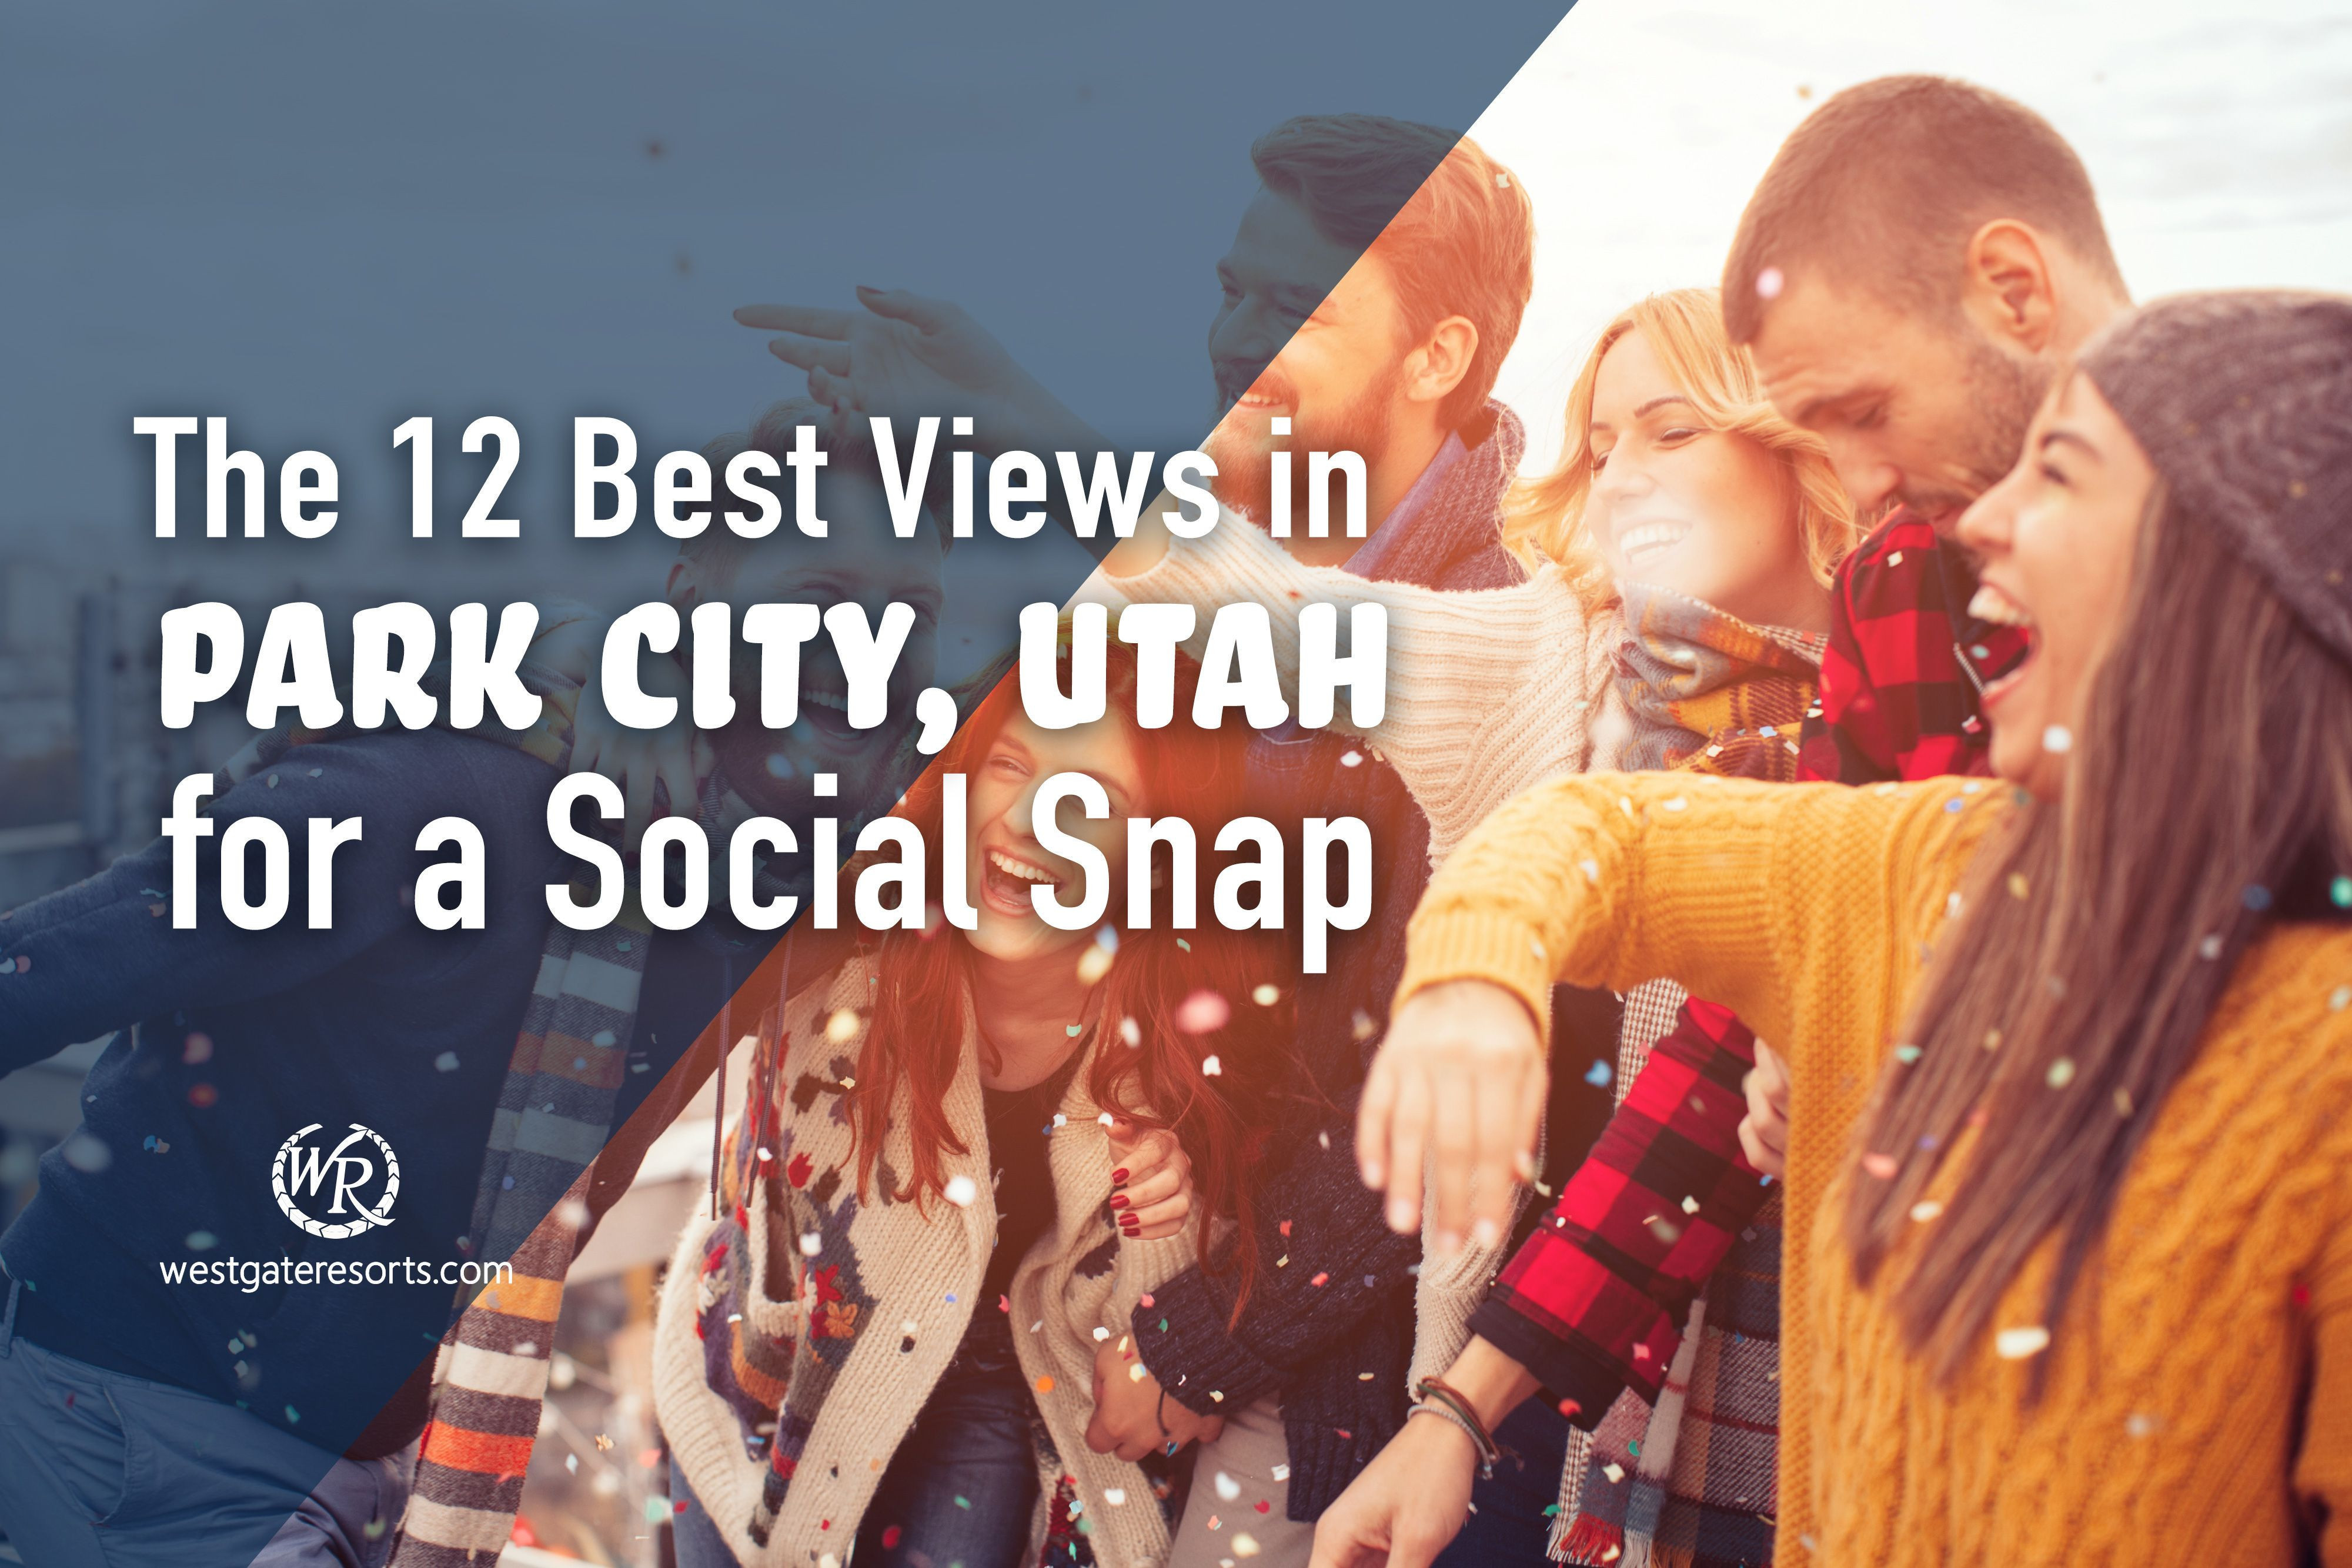 The 12 Best Views in Park City, Utah for a Social Snap